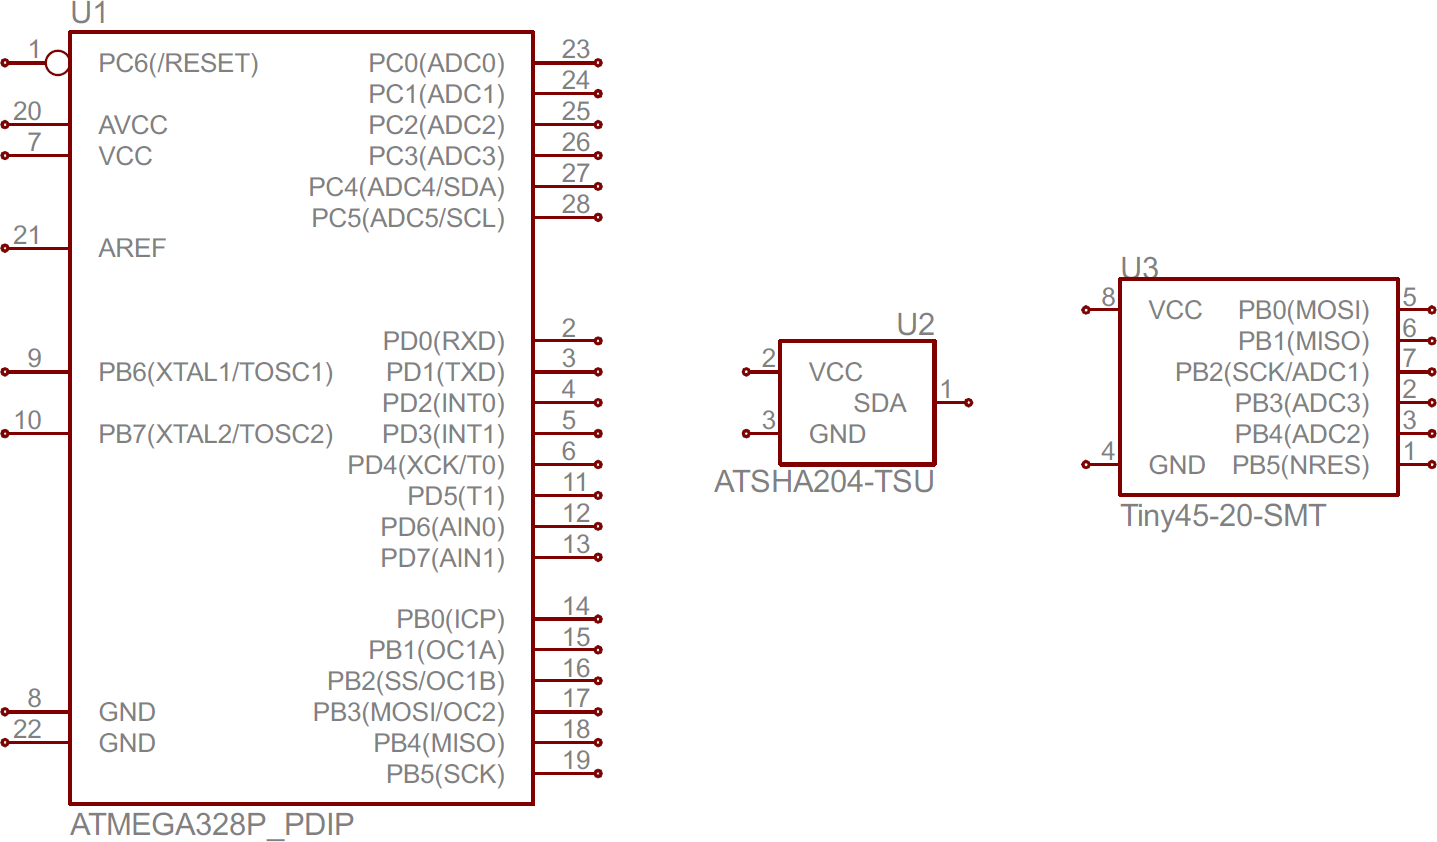 how to read a schematic learn sparkfun com engineering wiring diagram atmega328, atsha204, and attiny45 ic symbols schematic symbols for an atmega328